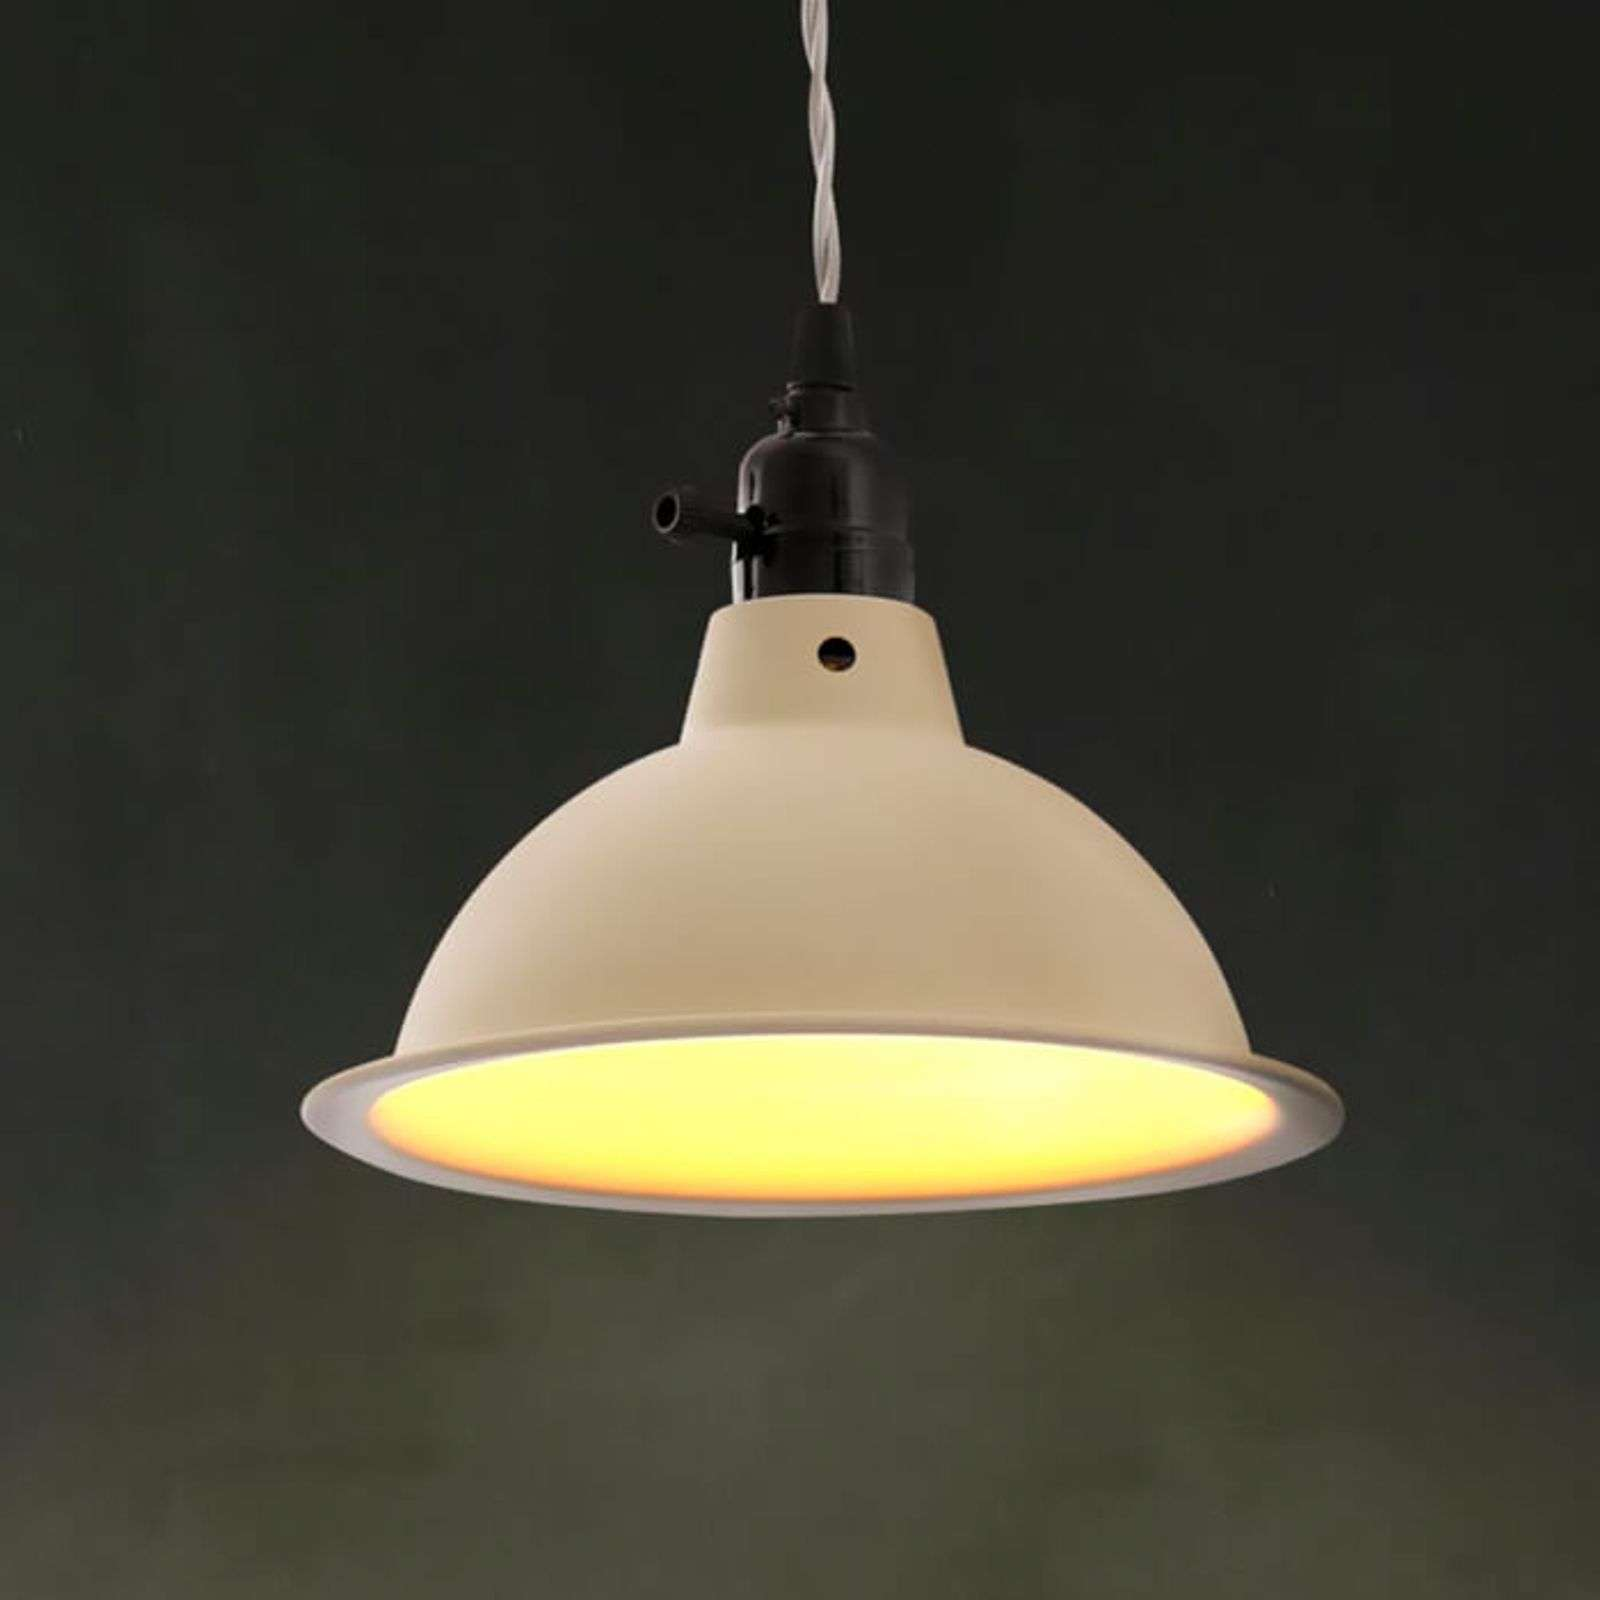 Suspension industrielle Pepper, beige